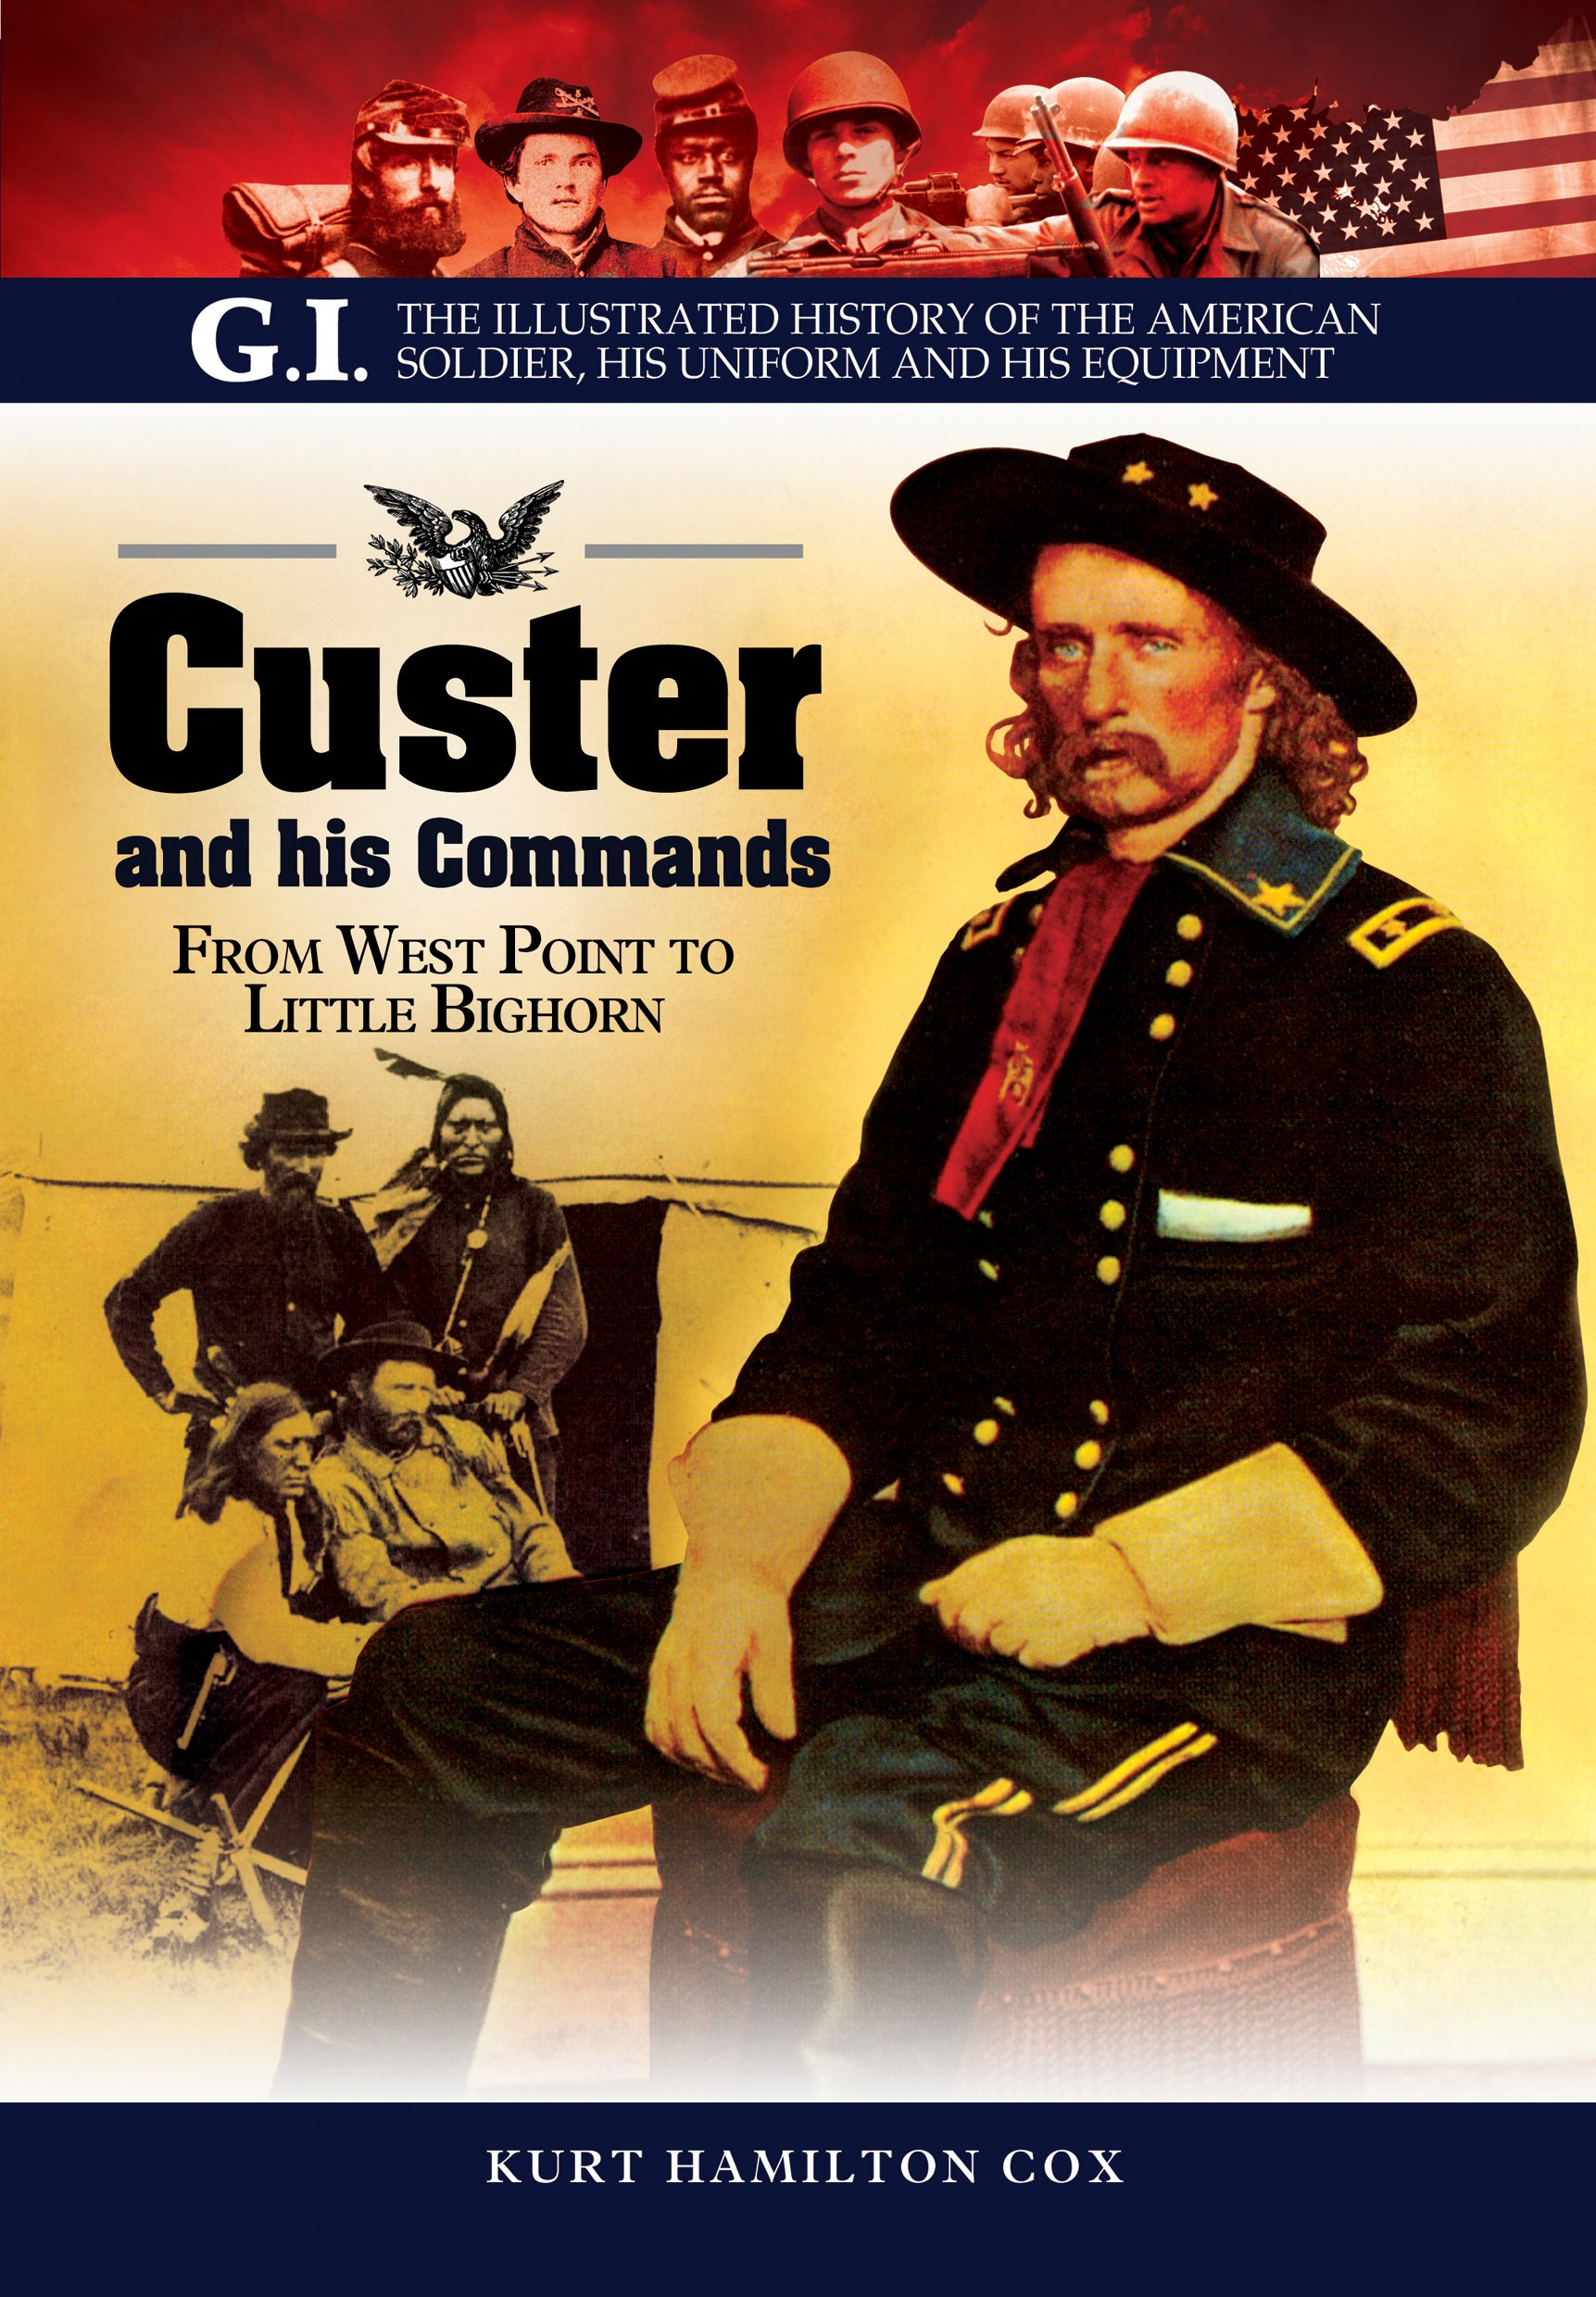 Download Custer and His Commands: From West Point to Little Bighorn (G.I. The Illustrated History of the American Soldier, His Uniform and his Equipment) ebook